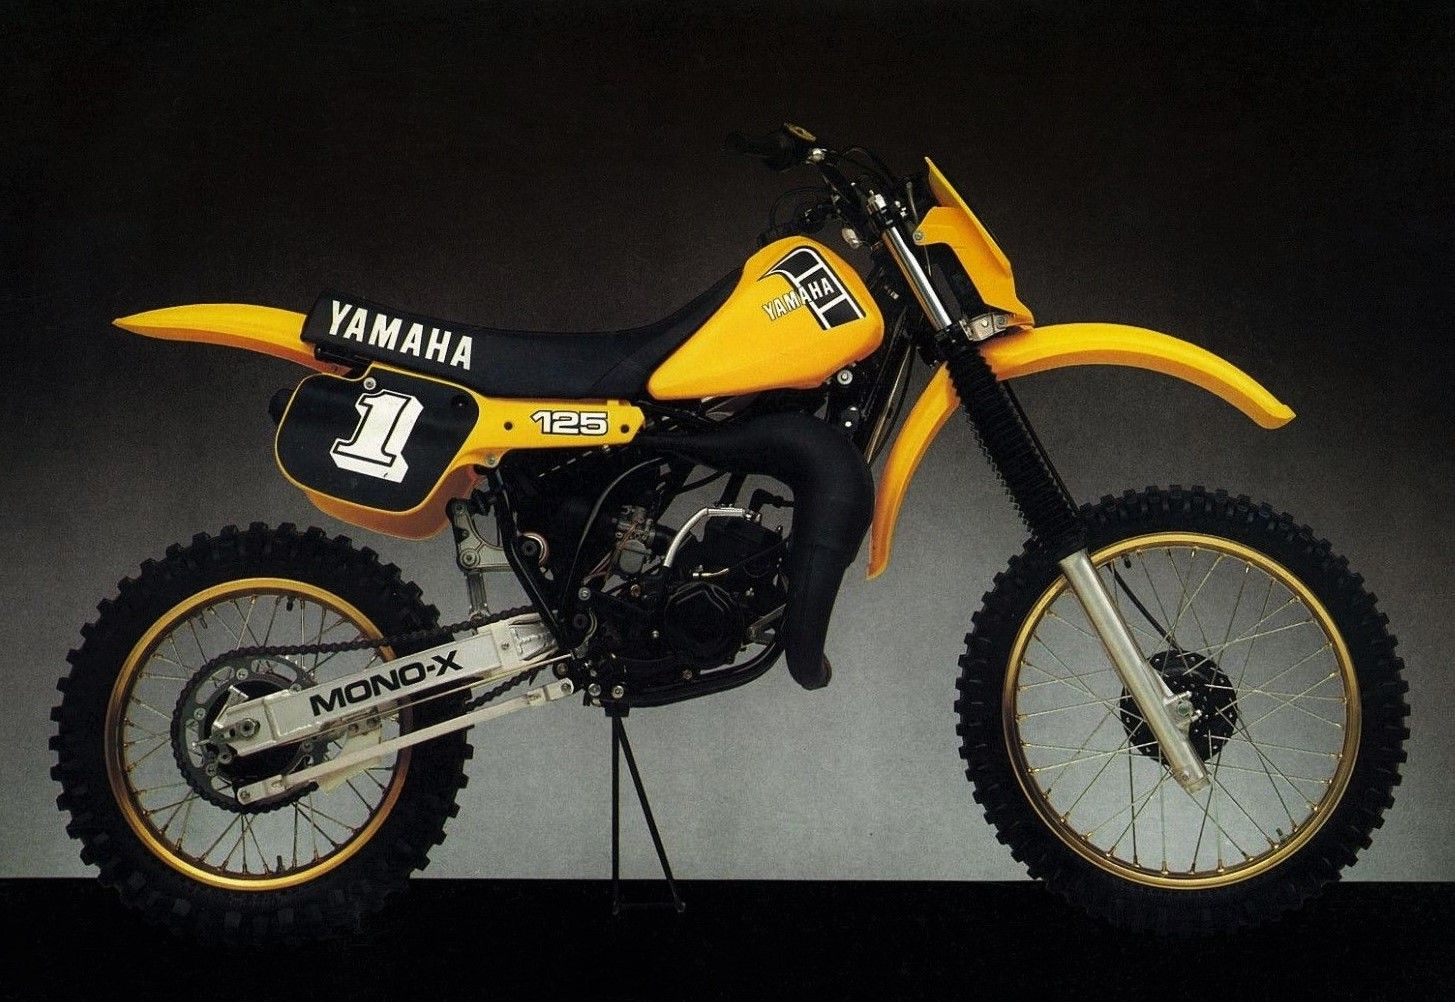 Yamaha Yz125 1983 Vintage Motocross Classic Bikes Bike Photo